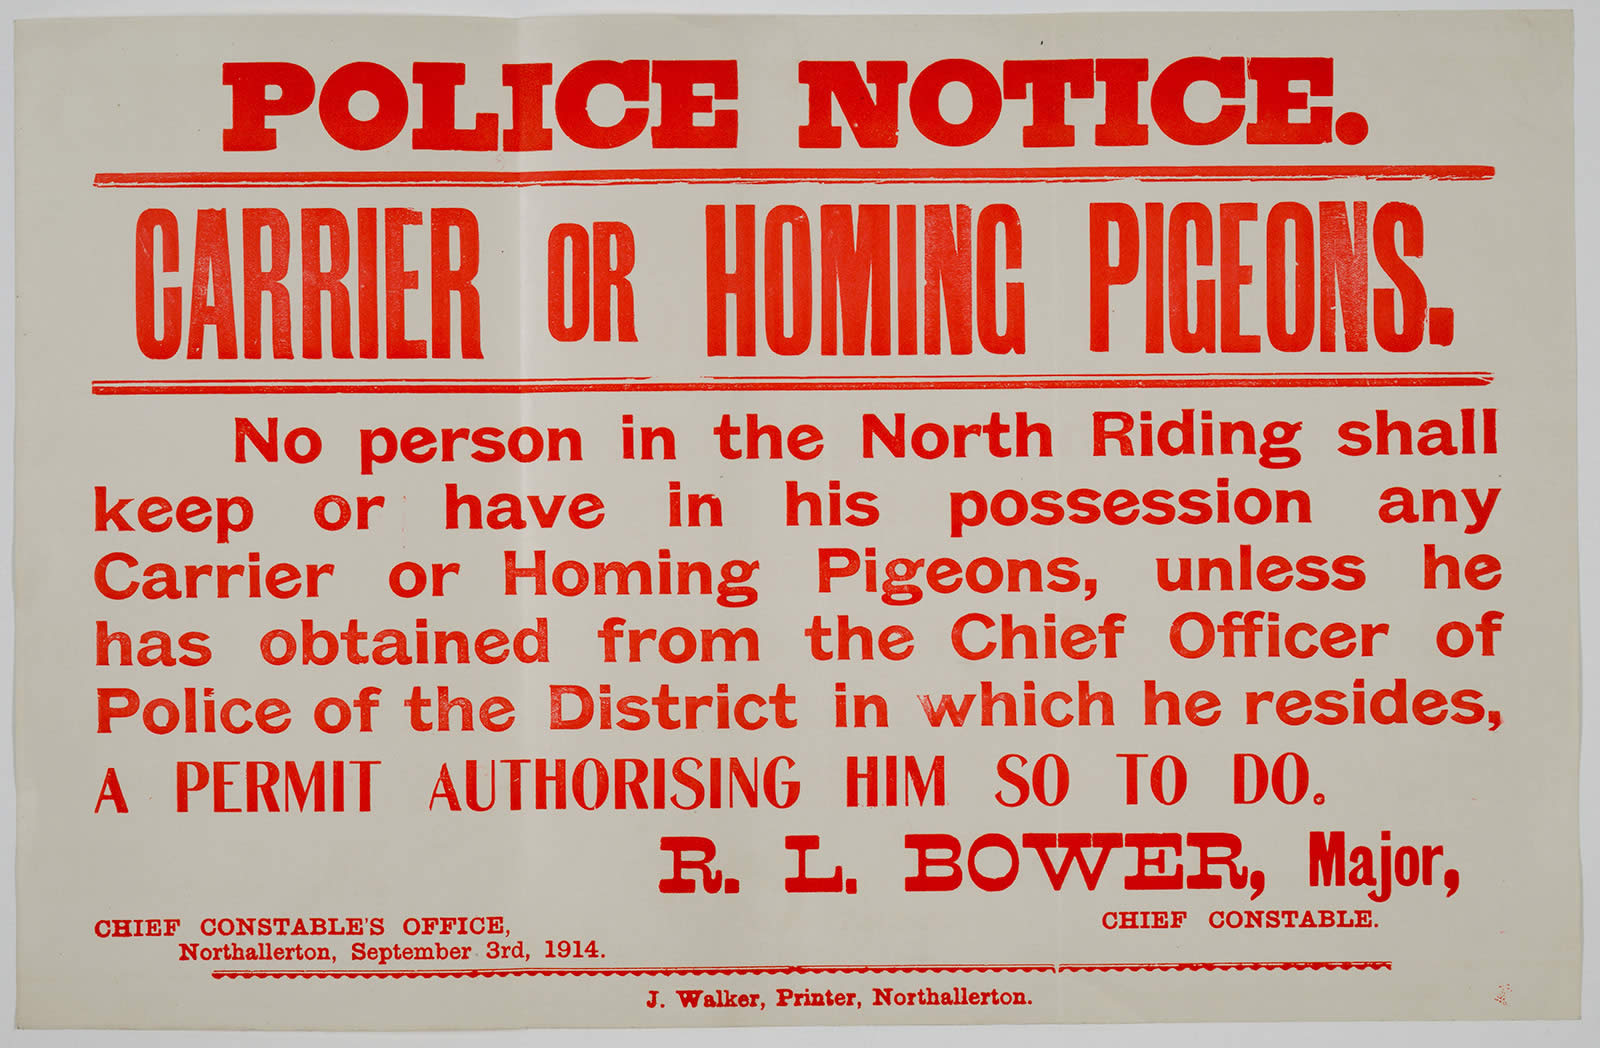 Image of a police notice of 1914 warning owners of homing pigeons that they need a permit